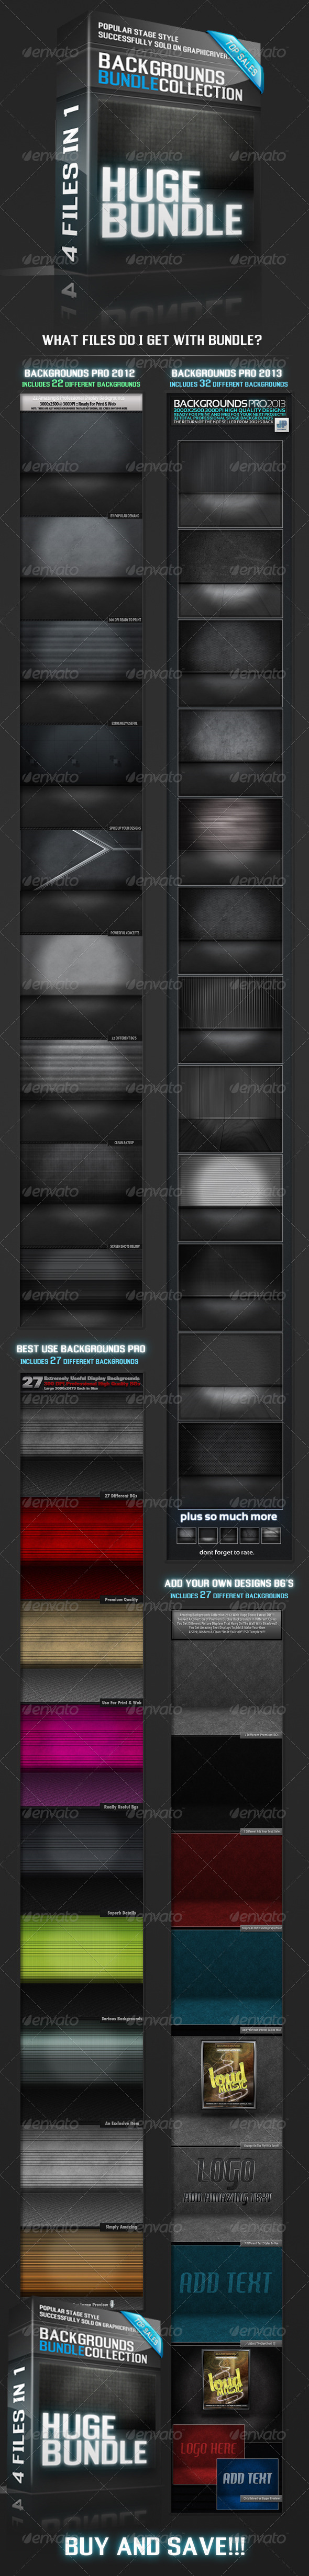 GraphicRiver Mock Up Style Backgrounds Bundle 5986901